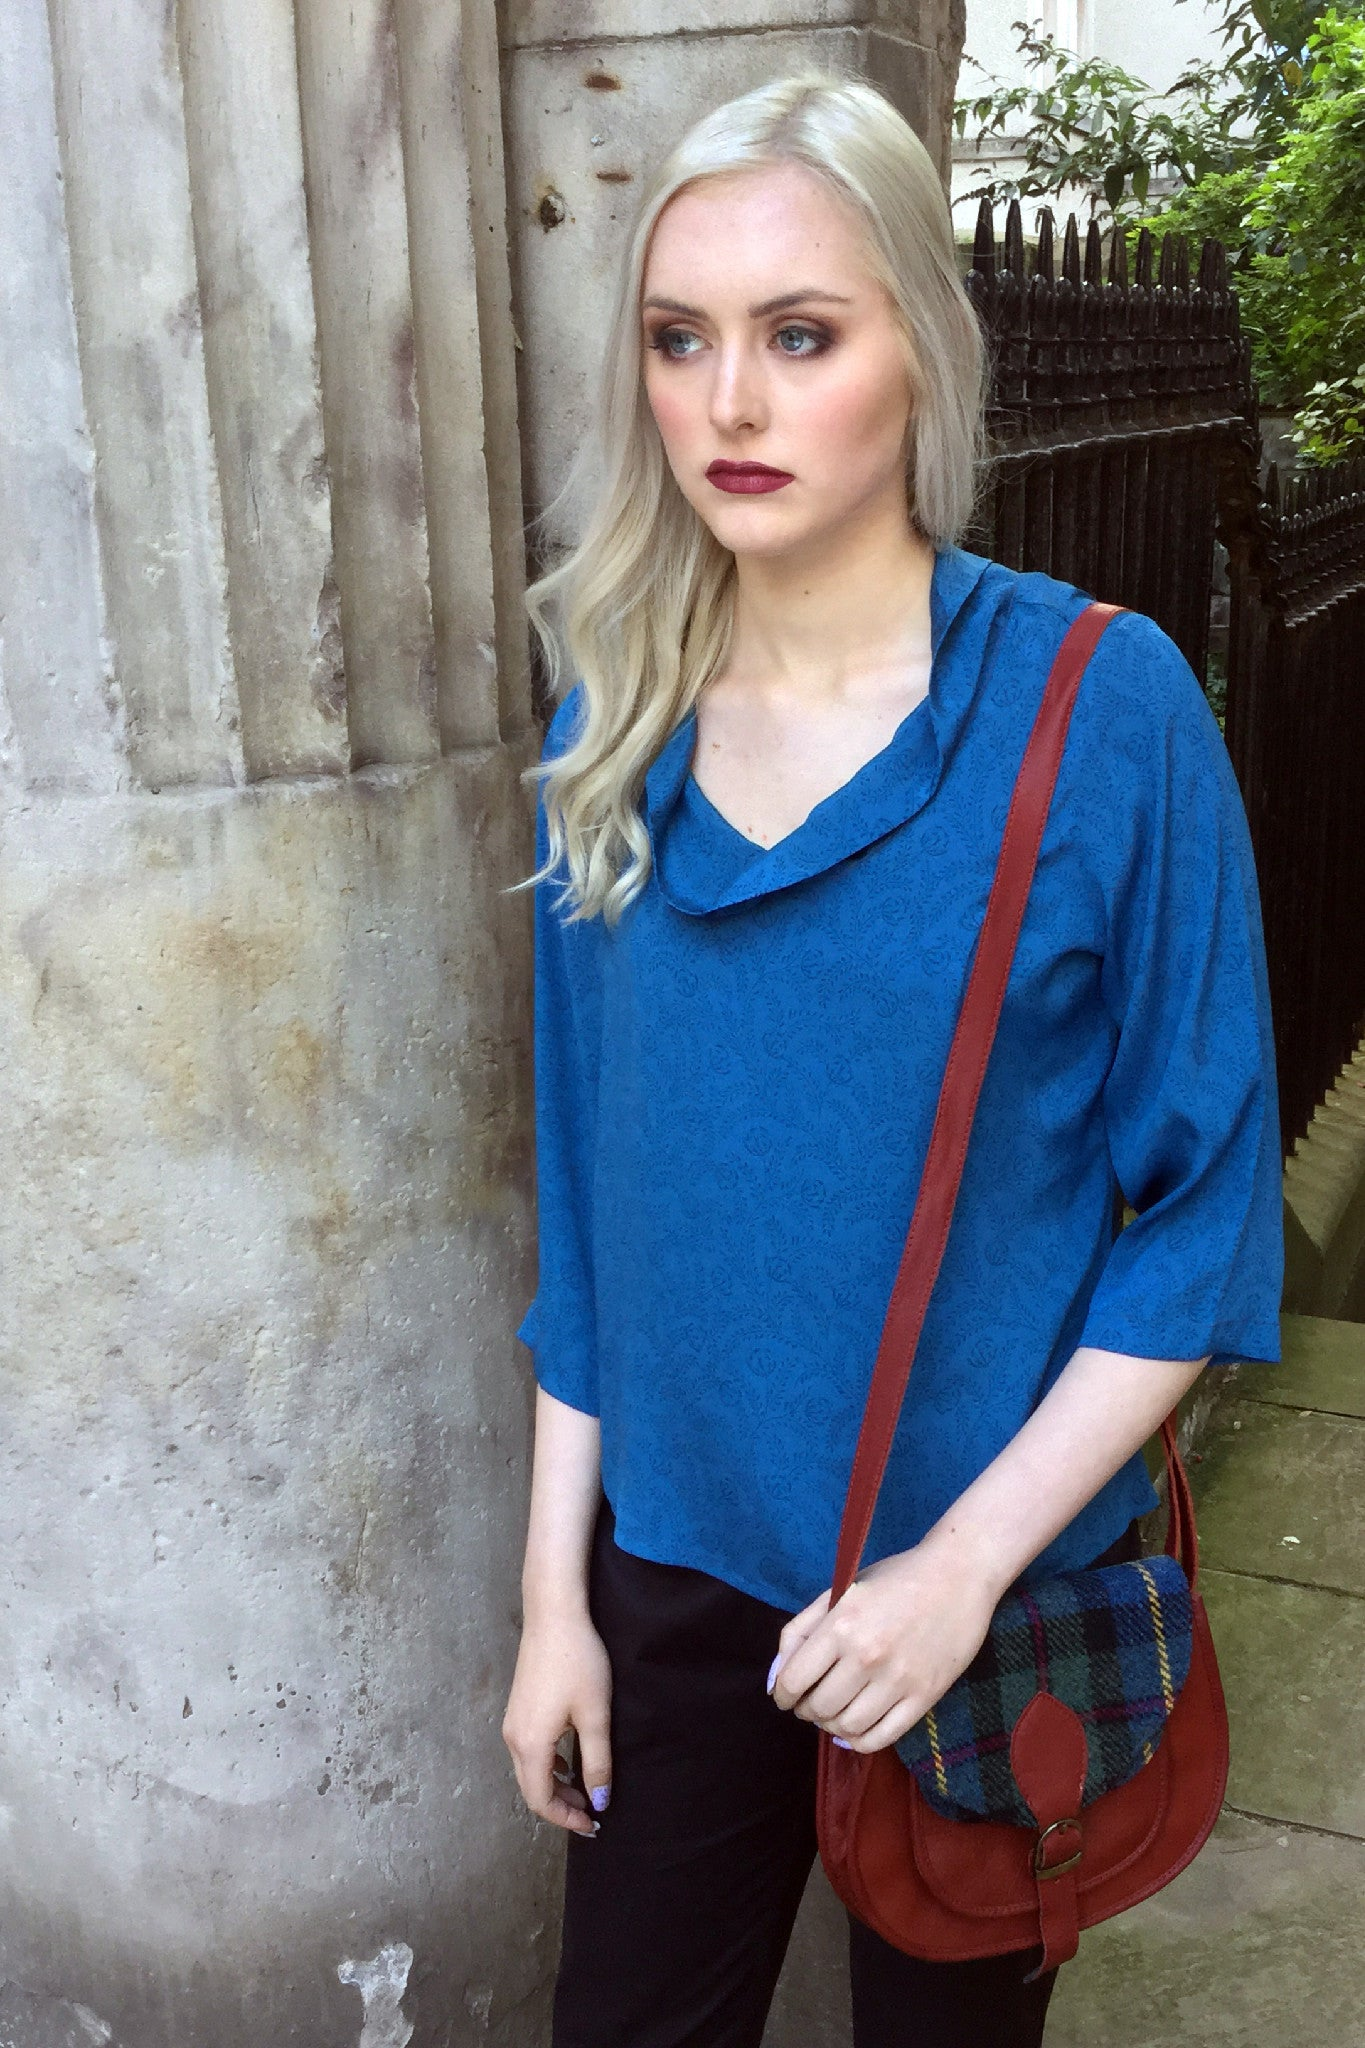 Sketch London Teal Blue Top Ethical Sustainable Fashion Women